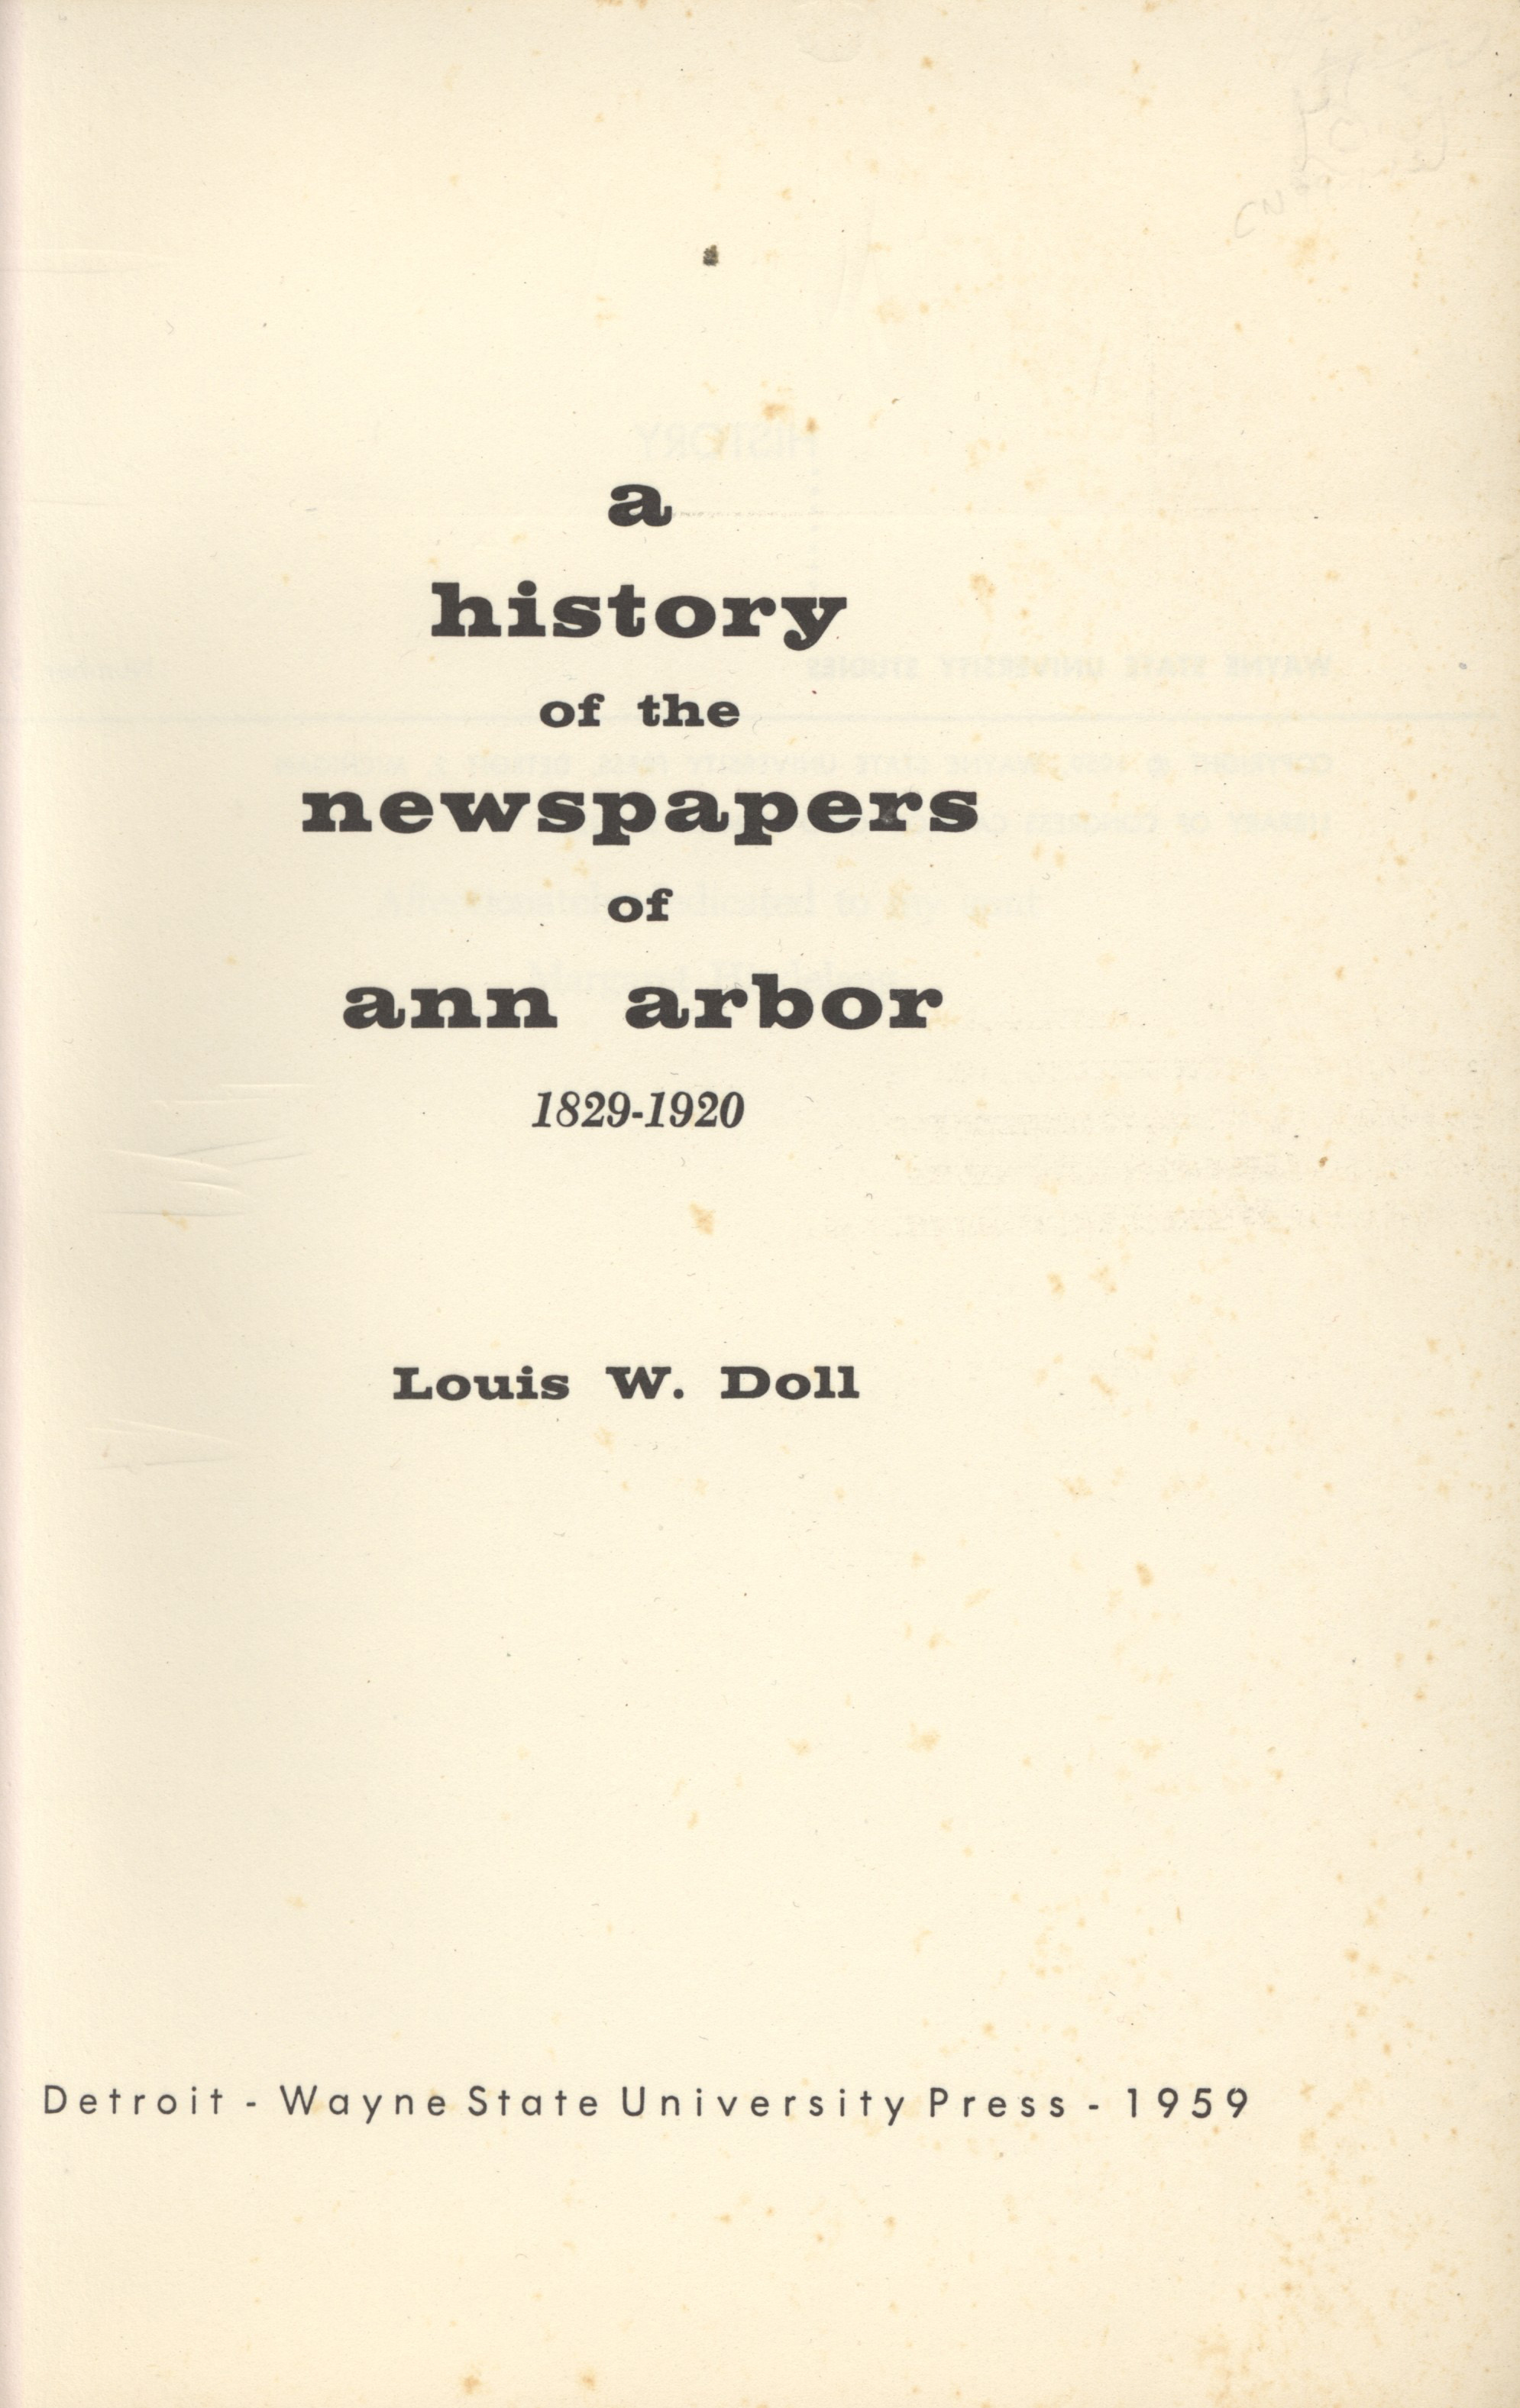 A History of the Newspapers of Ann Arbor 1829-1920 image